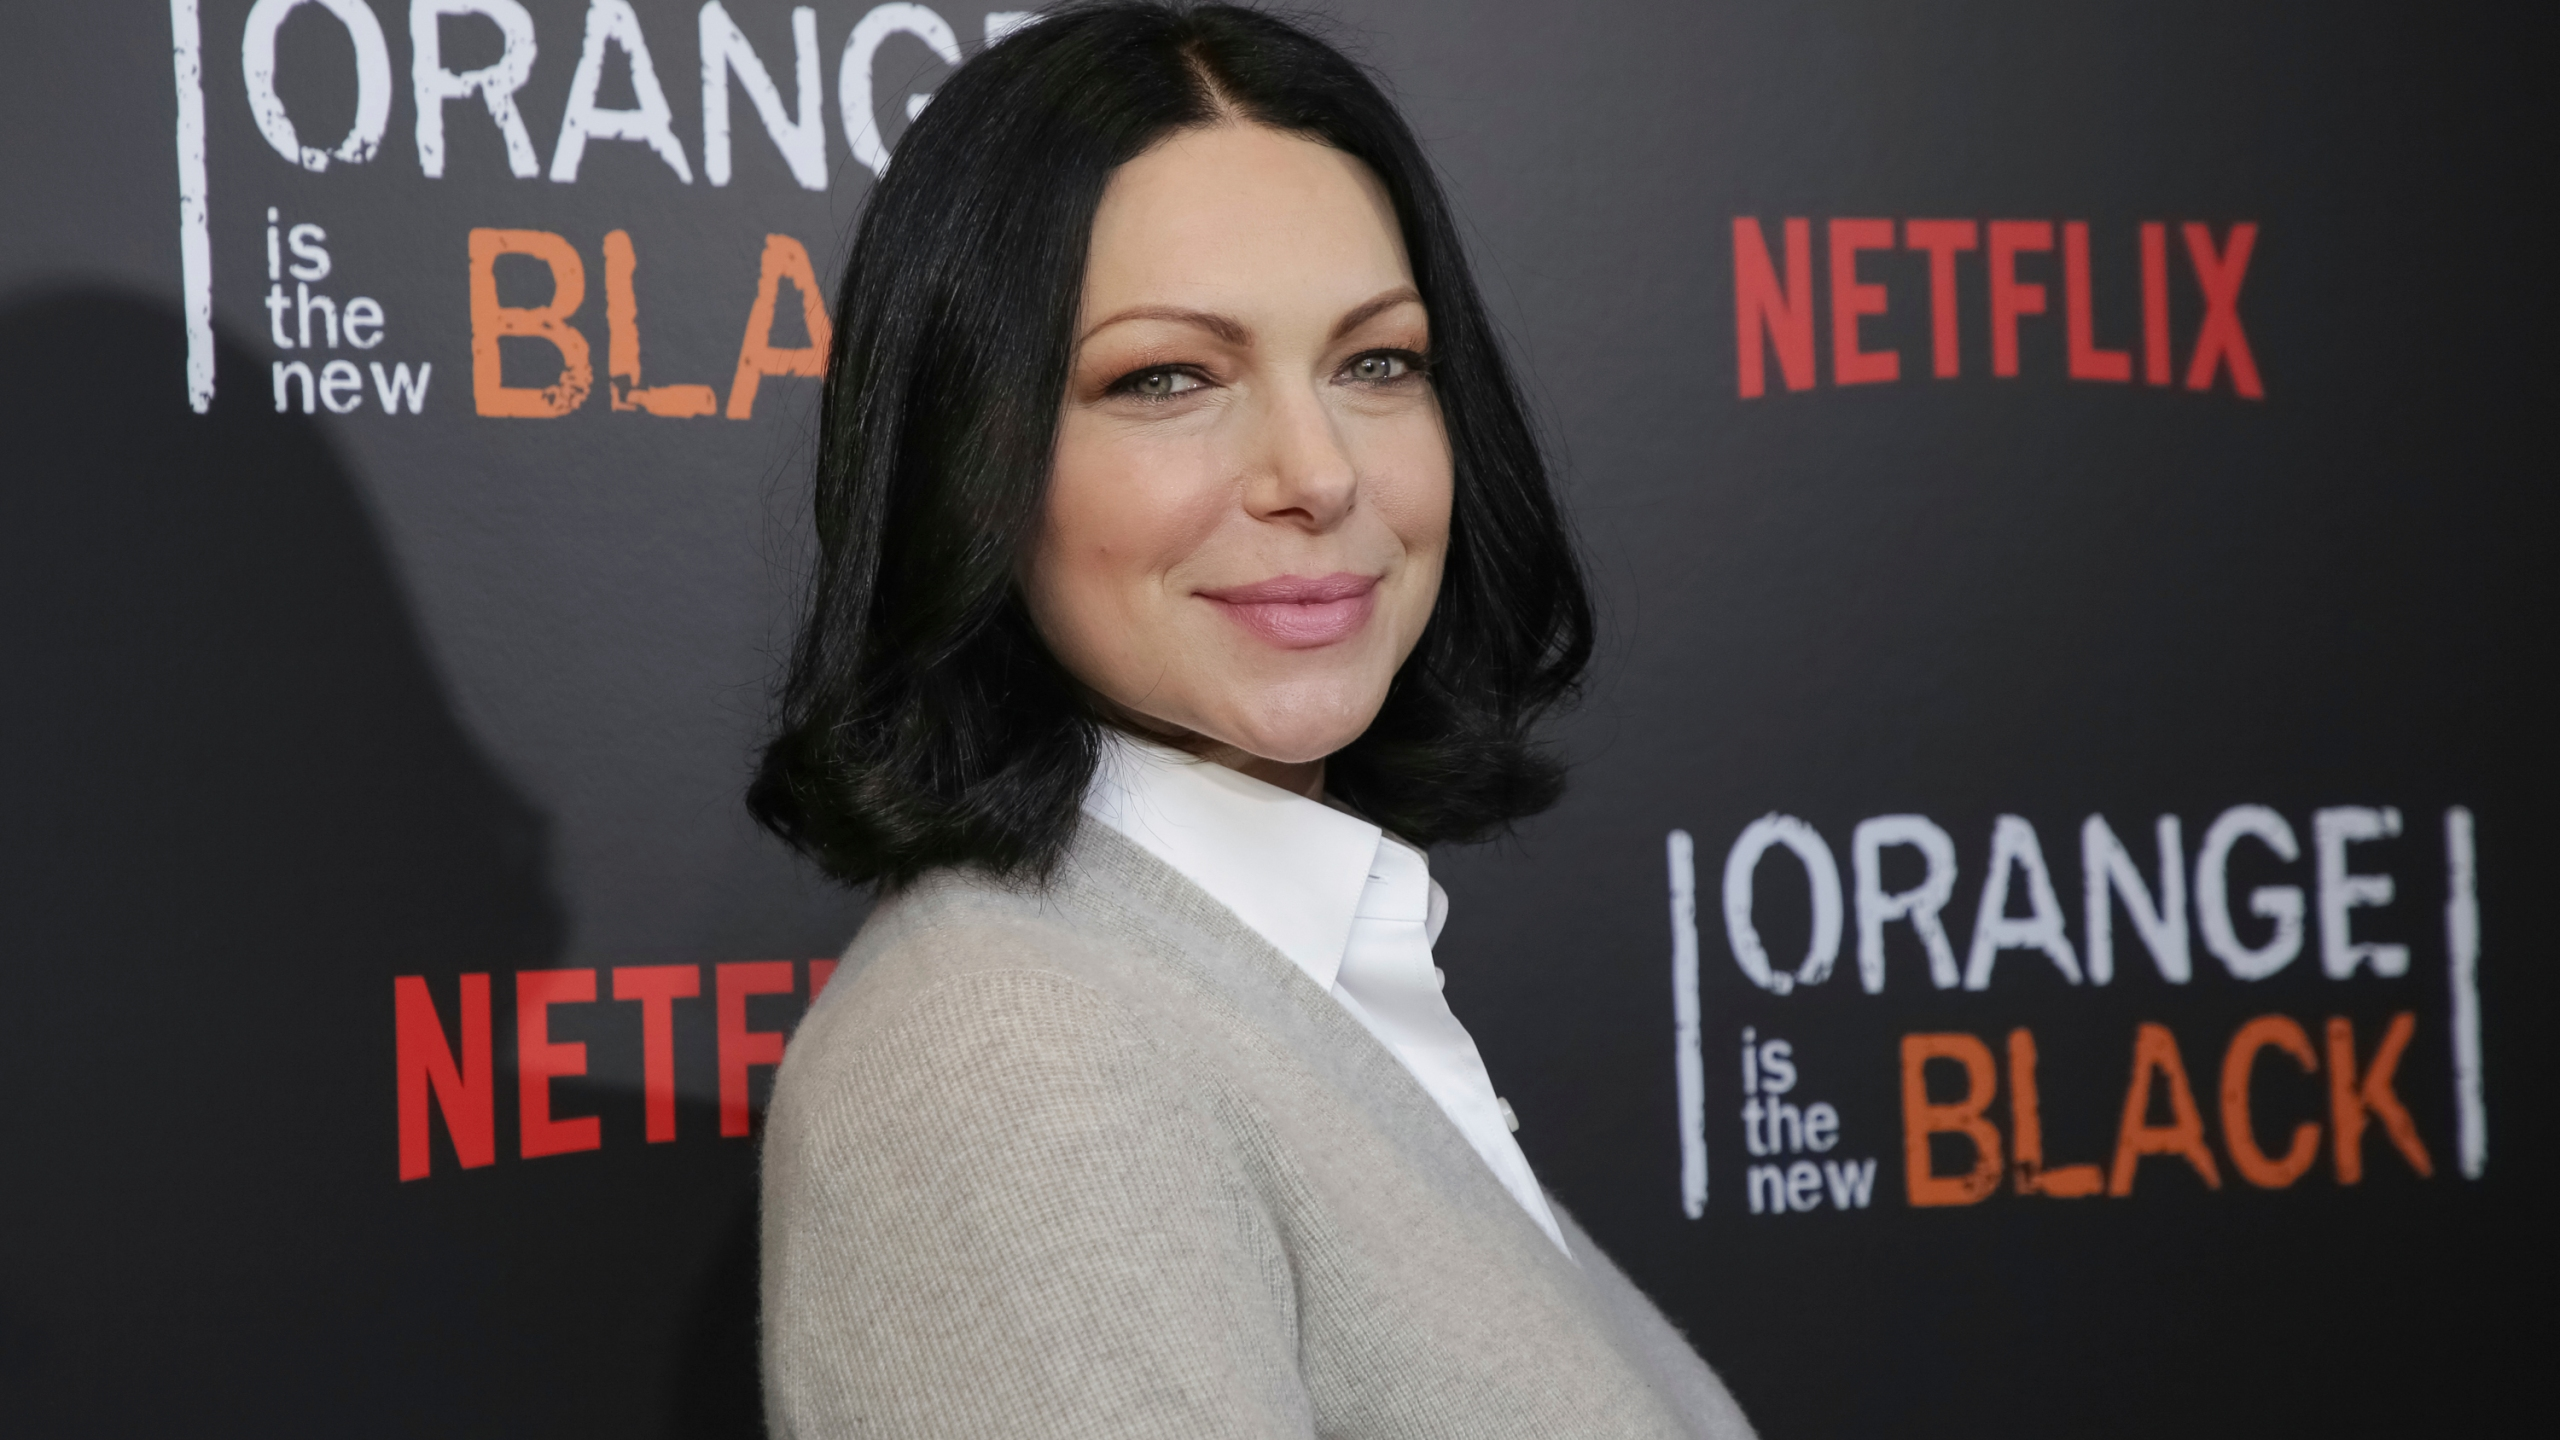 Orange Is The New Black Netflix For Your Consideration Event_1539829952169